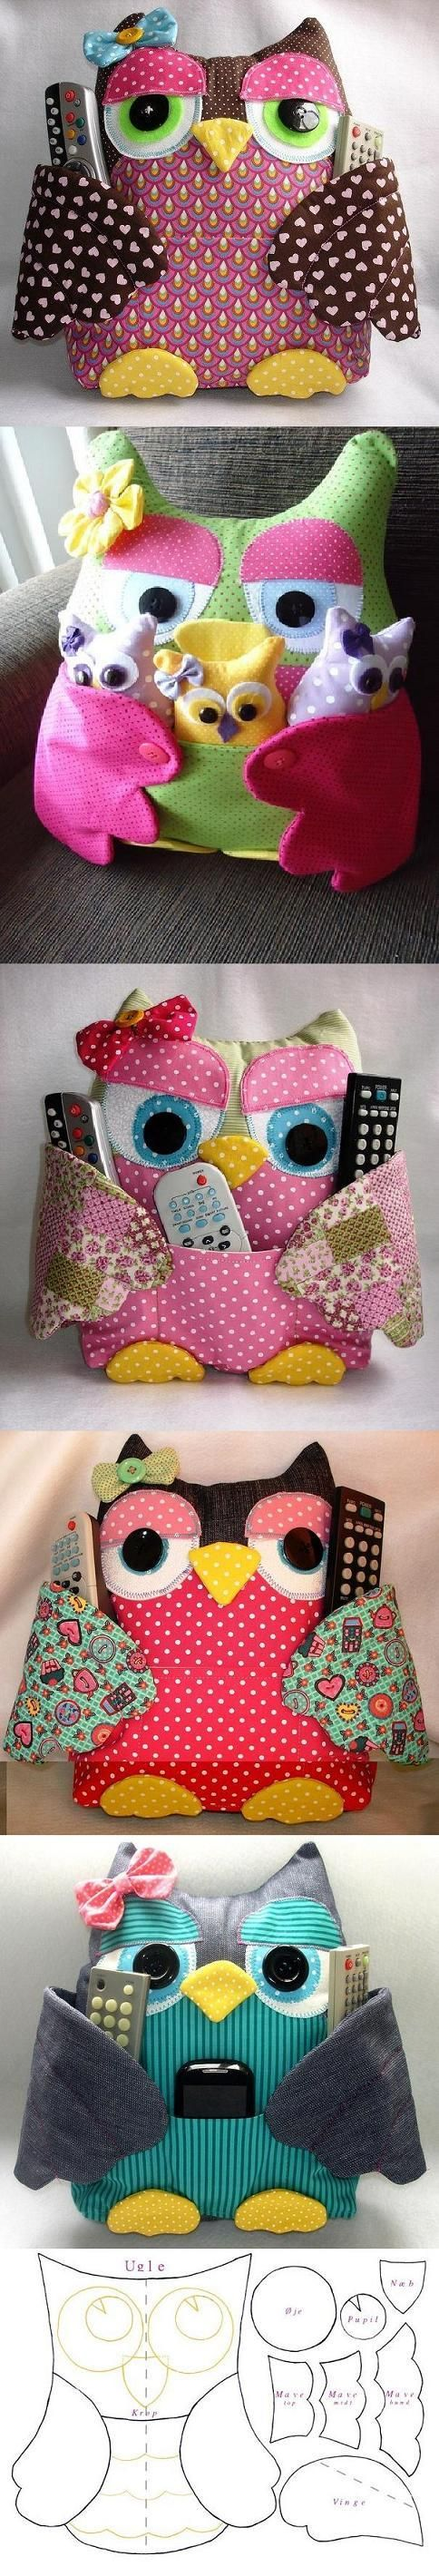 DIY Owl Pad with Pockets DIY Owl Pad with Pockets (free pattern is not PDF but, another program that needs to be downloaded - ASK STEPHEN):